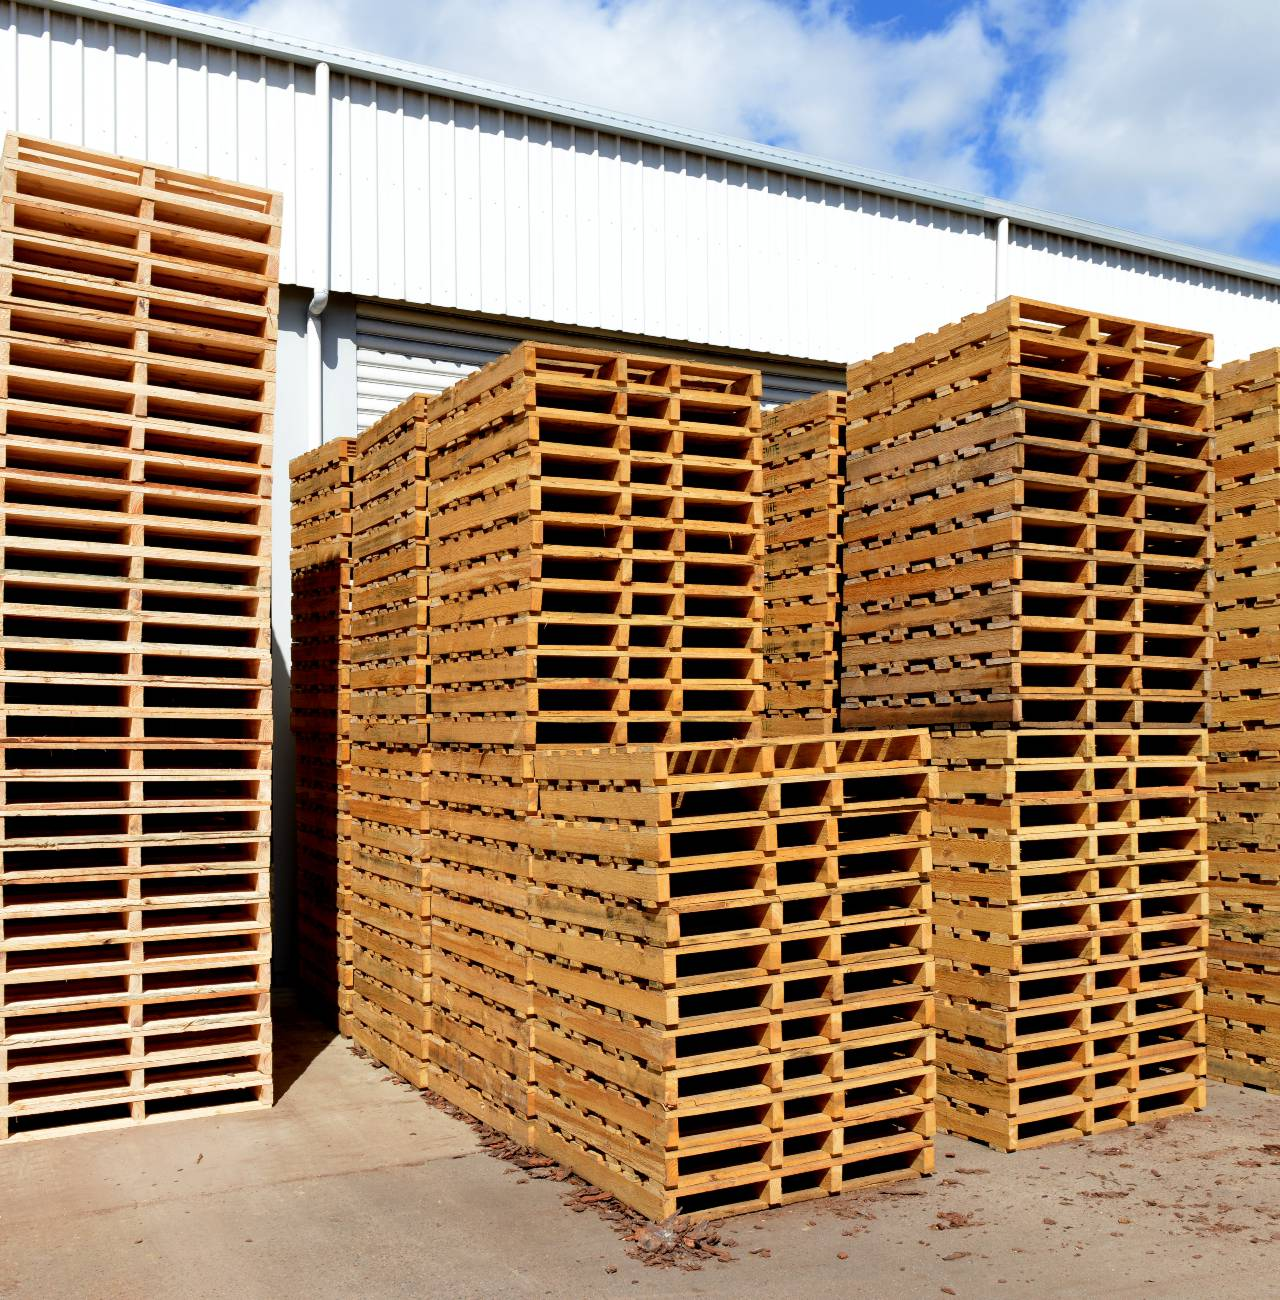 townsville crates